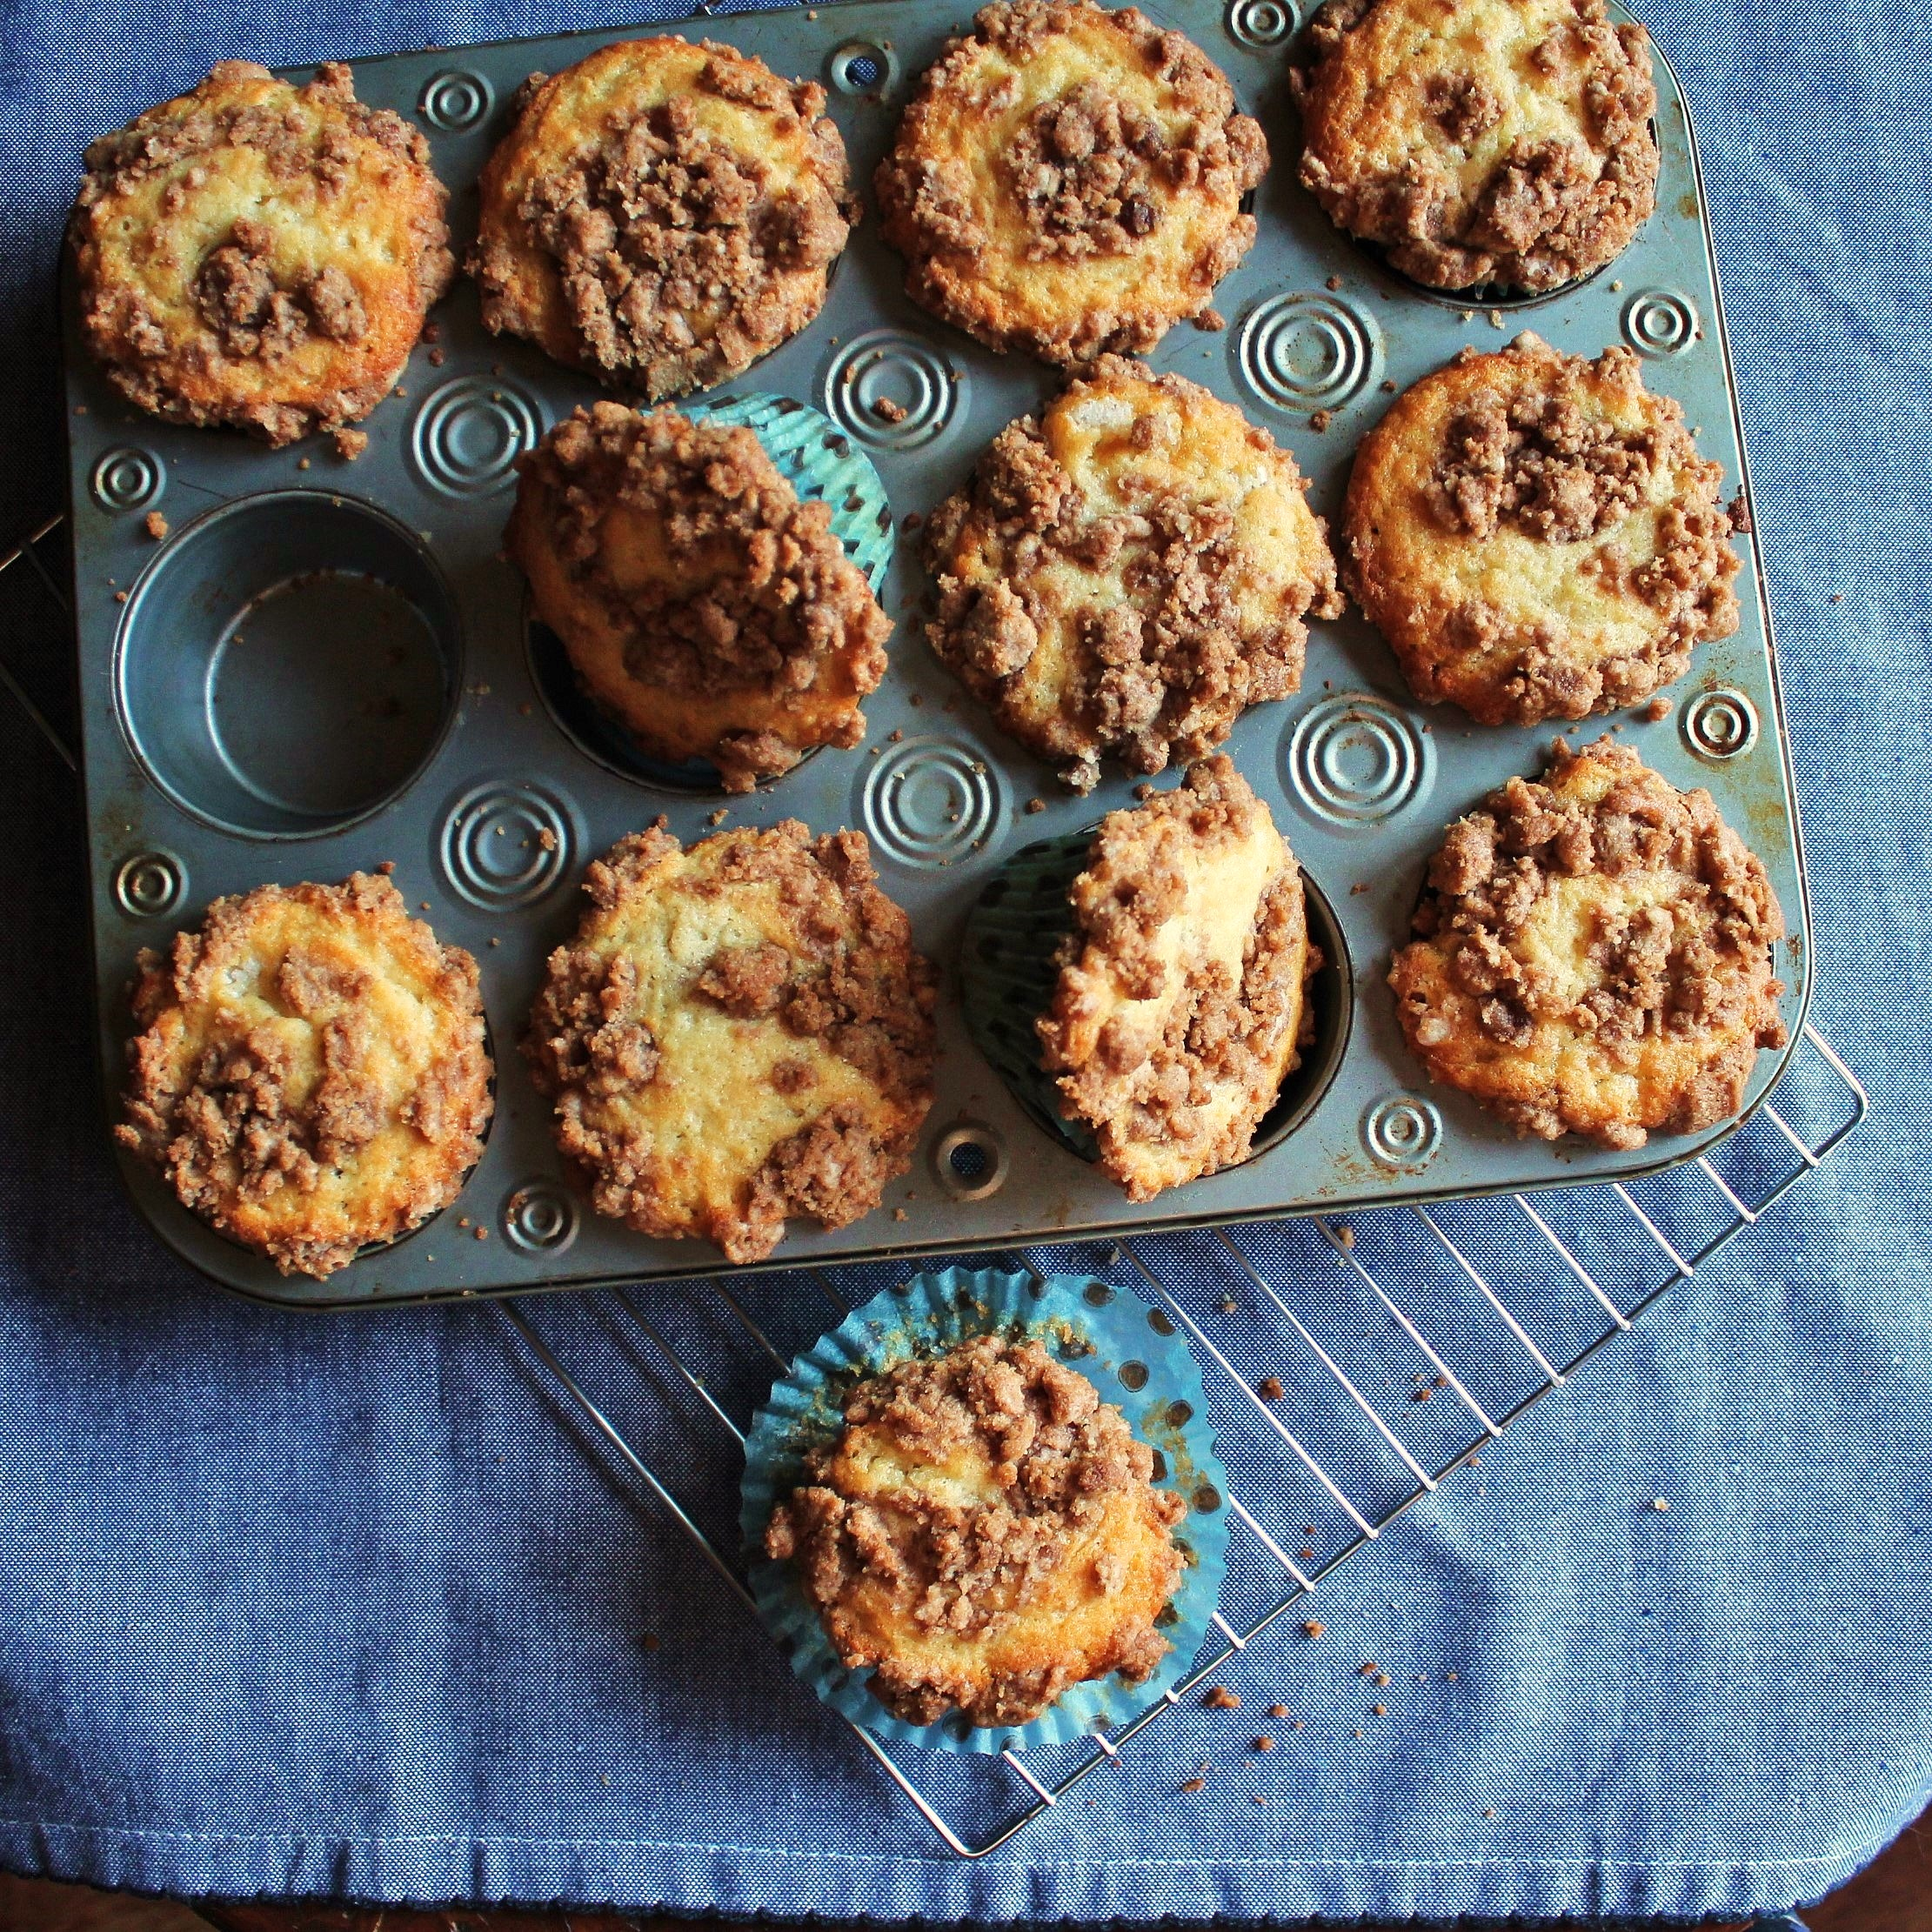 coffe cake muffins with streusel topping